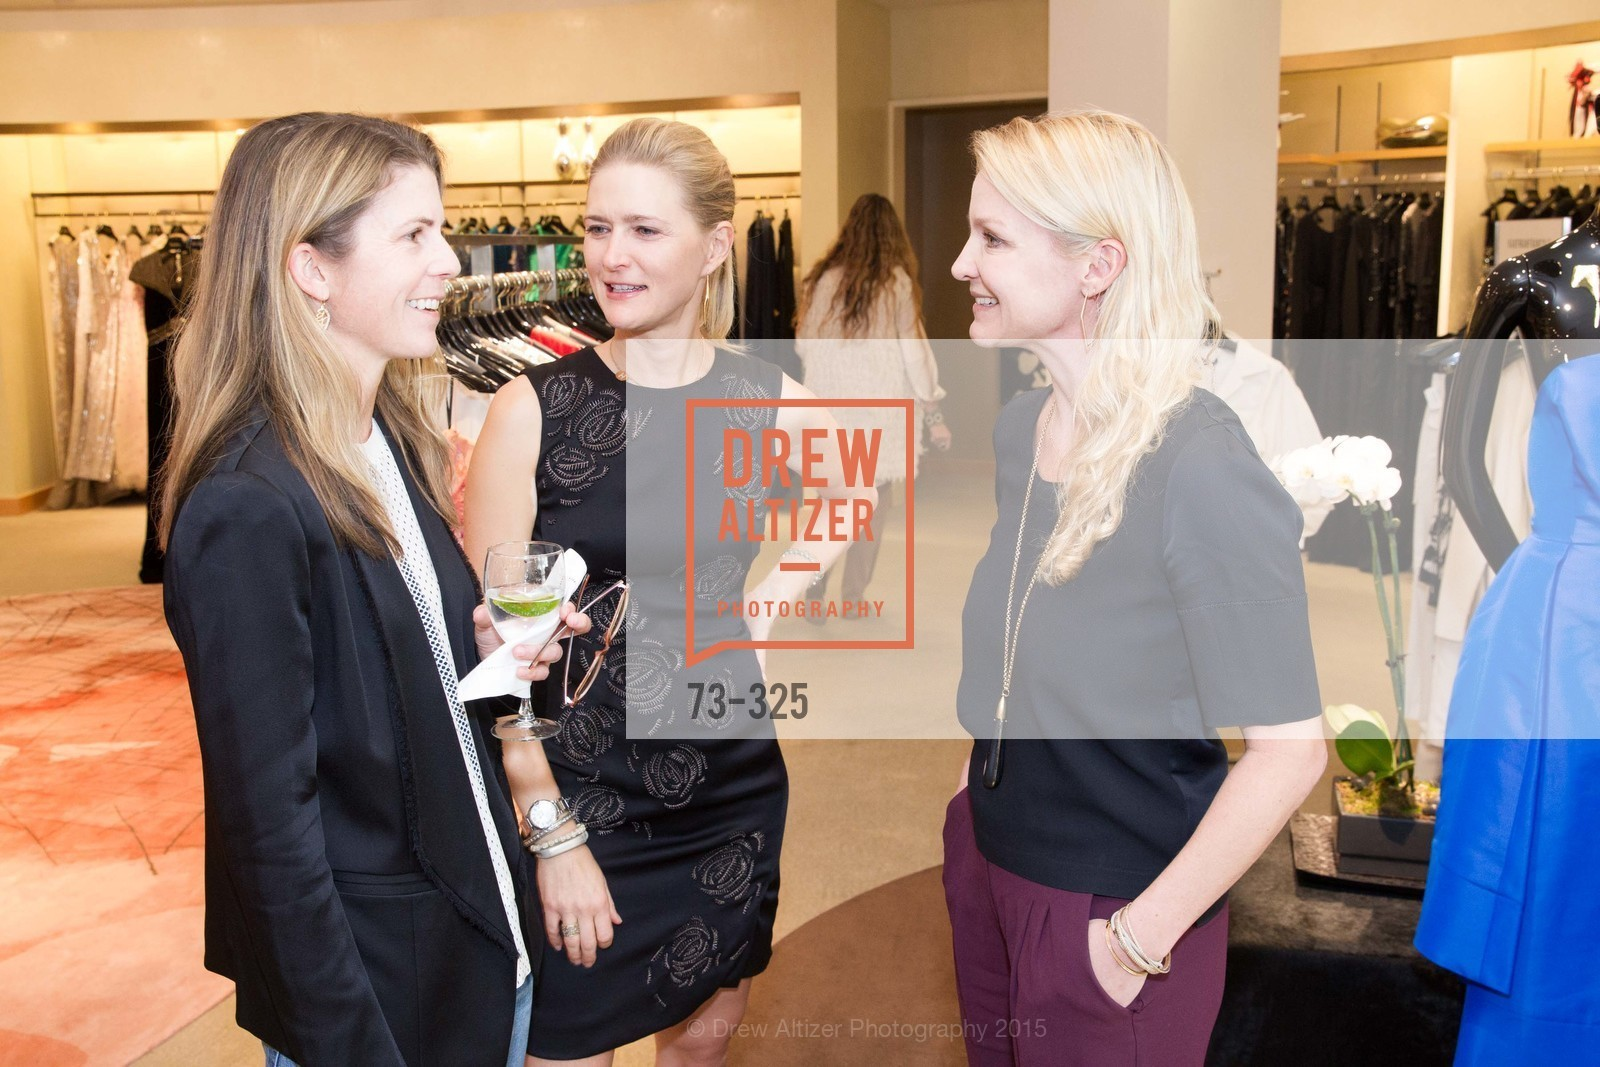 Alicia Engstrom, Kristy Caylor, Maiyet Reception at Neiman Marcus, Neiman Marcus, September 29th, 2015,Drew Altizer, Drew Altizer Photography, full-service agency, private events, San Francisco photographer, photographer california